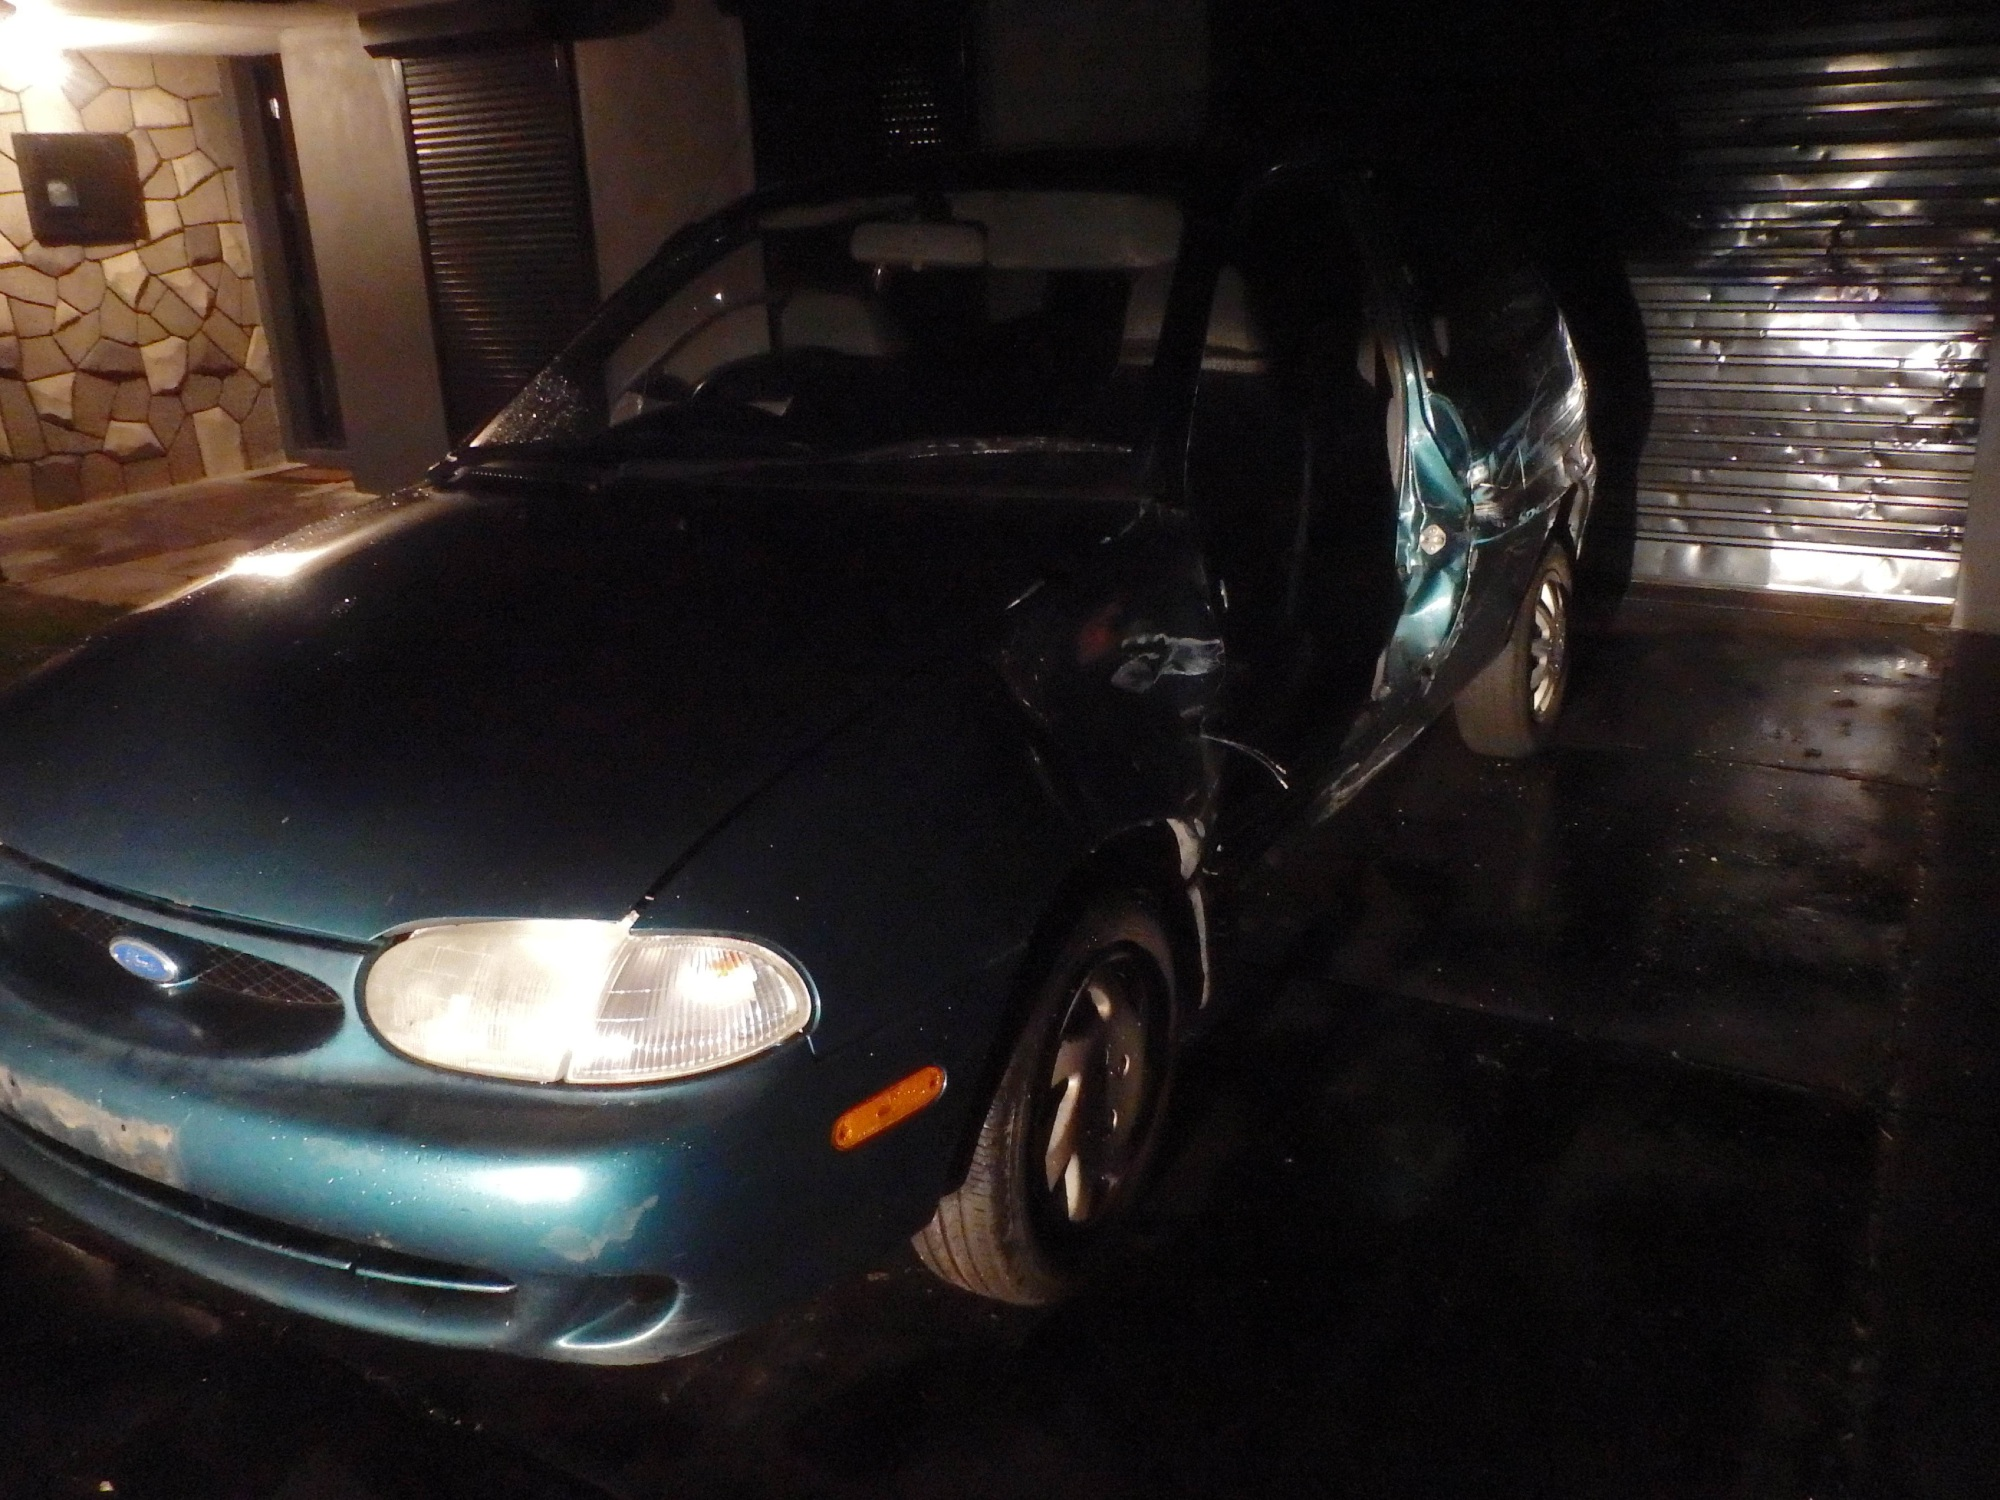 Police seized a vehicle of interest at a Warnbro house.